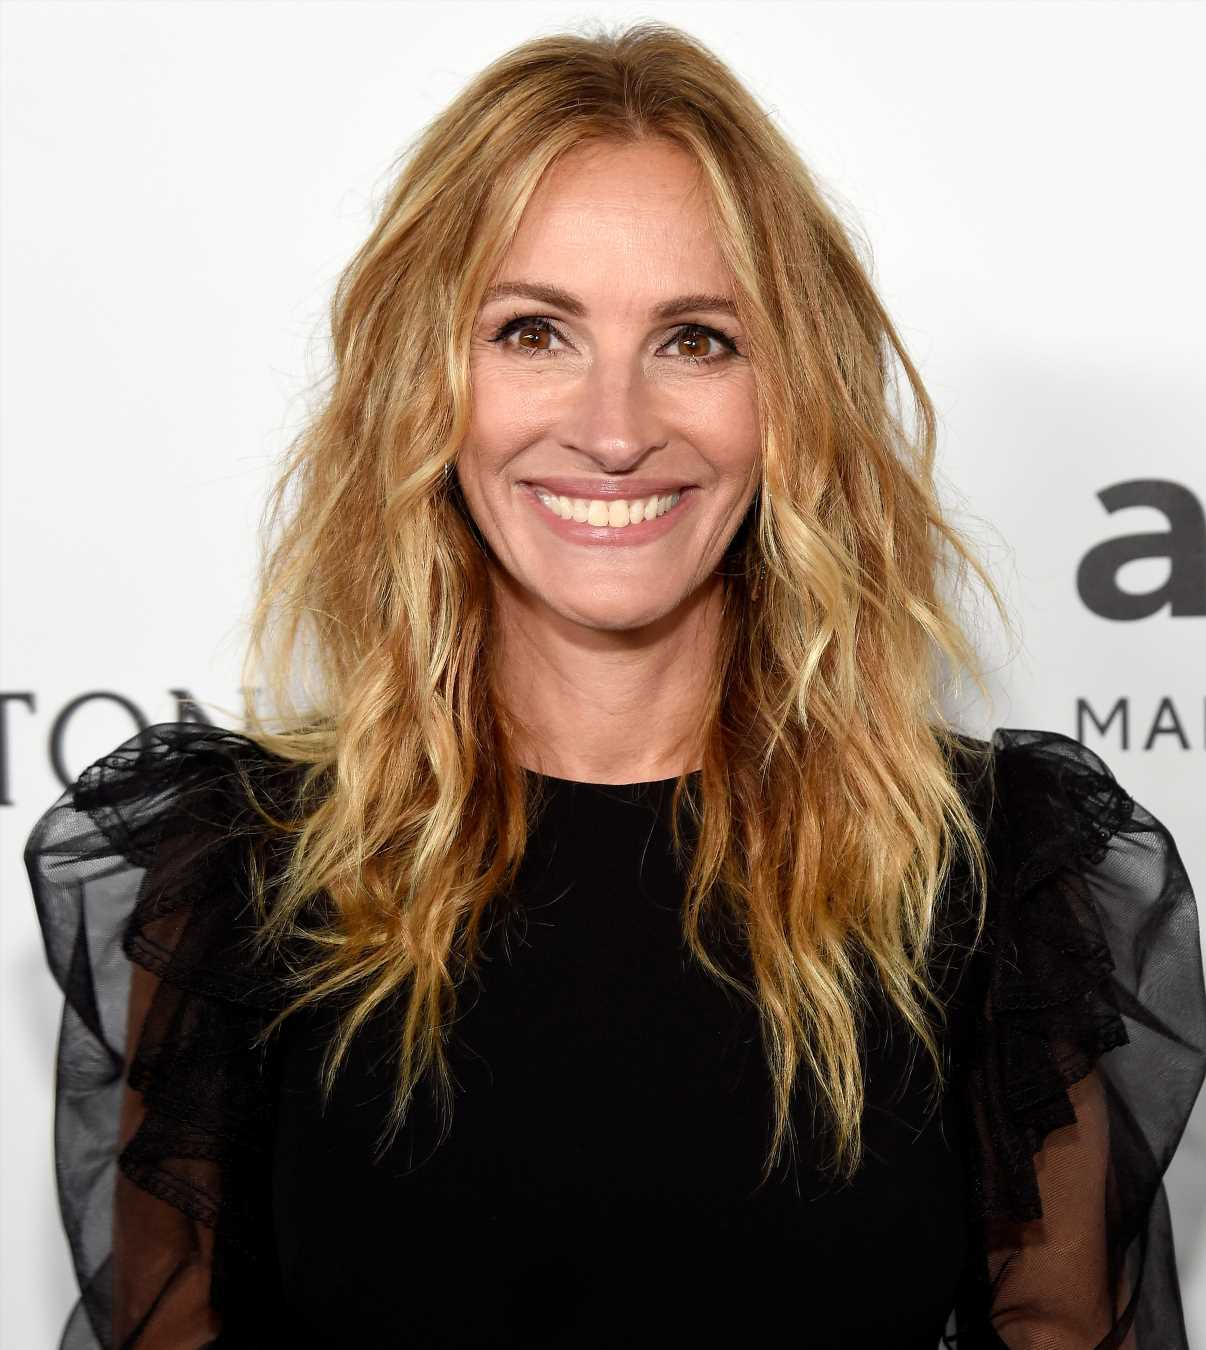 Julia Roberts Reveals Her Family's Christmas Traditions and Her Holiday Guilty Pleasure